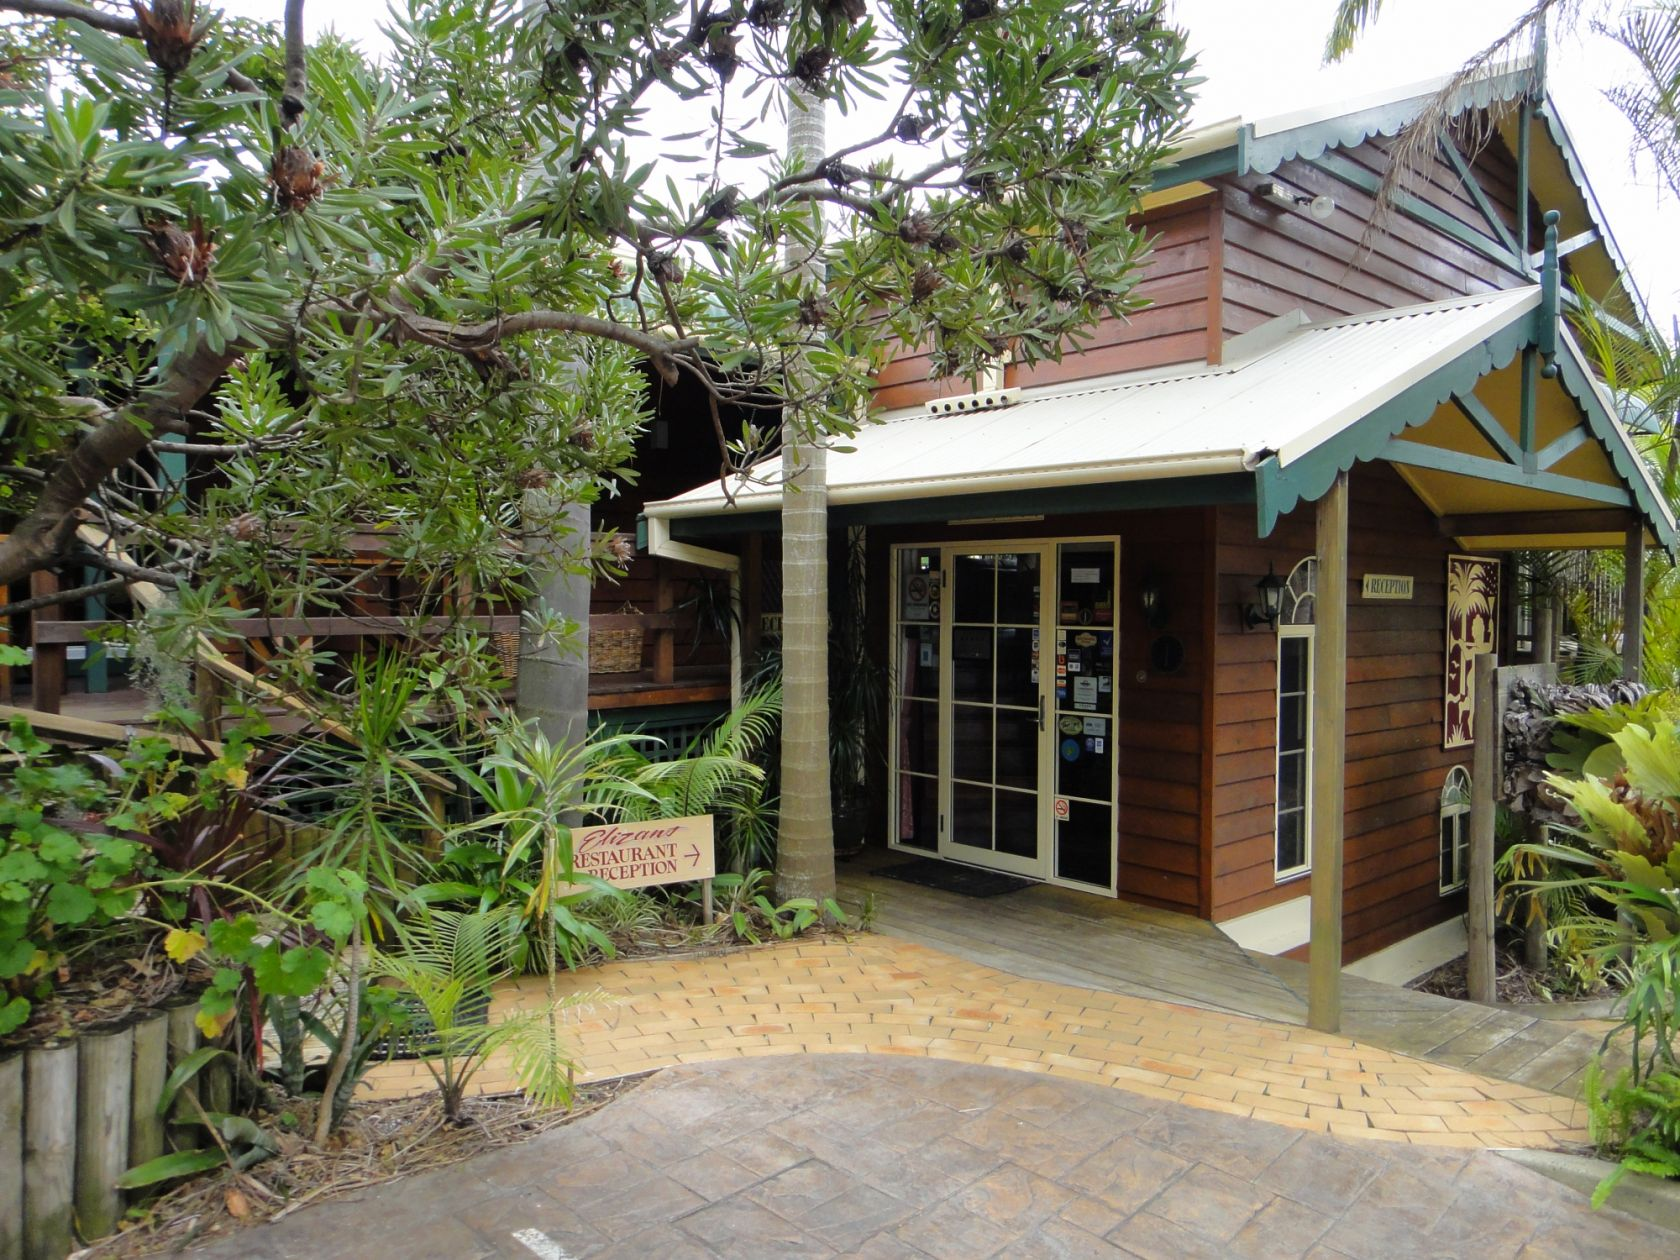 Premium Boutique Guesthouse on the Shoalhaven Holiday Coast